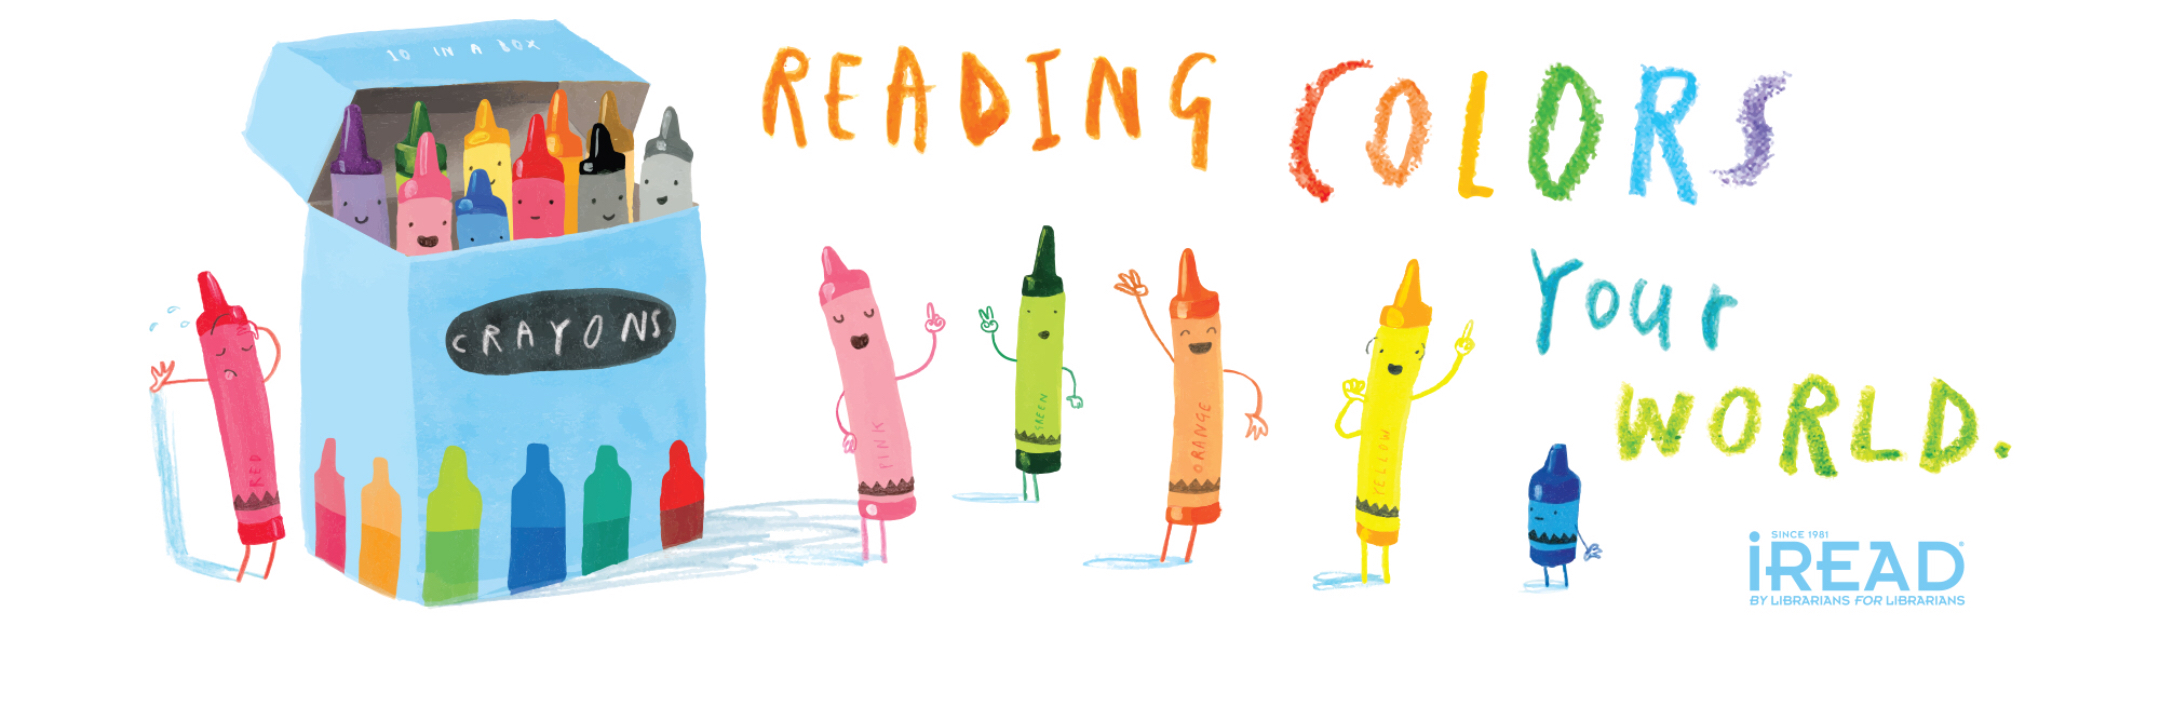 Reading Colors Your World illustration with crayons